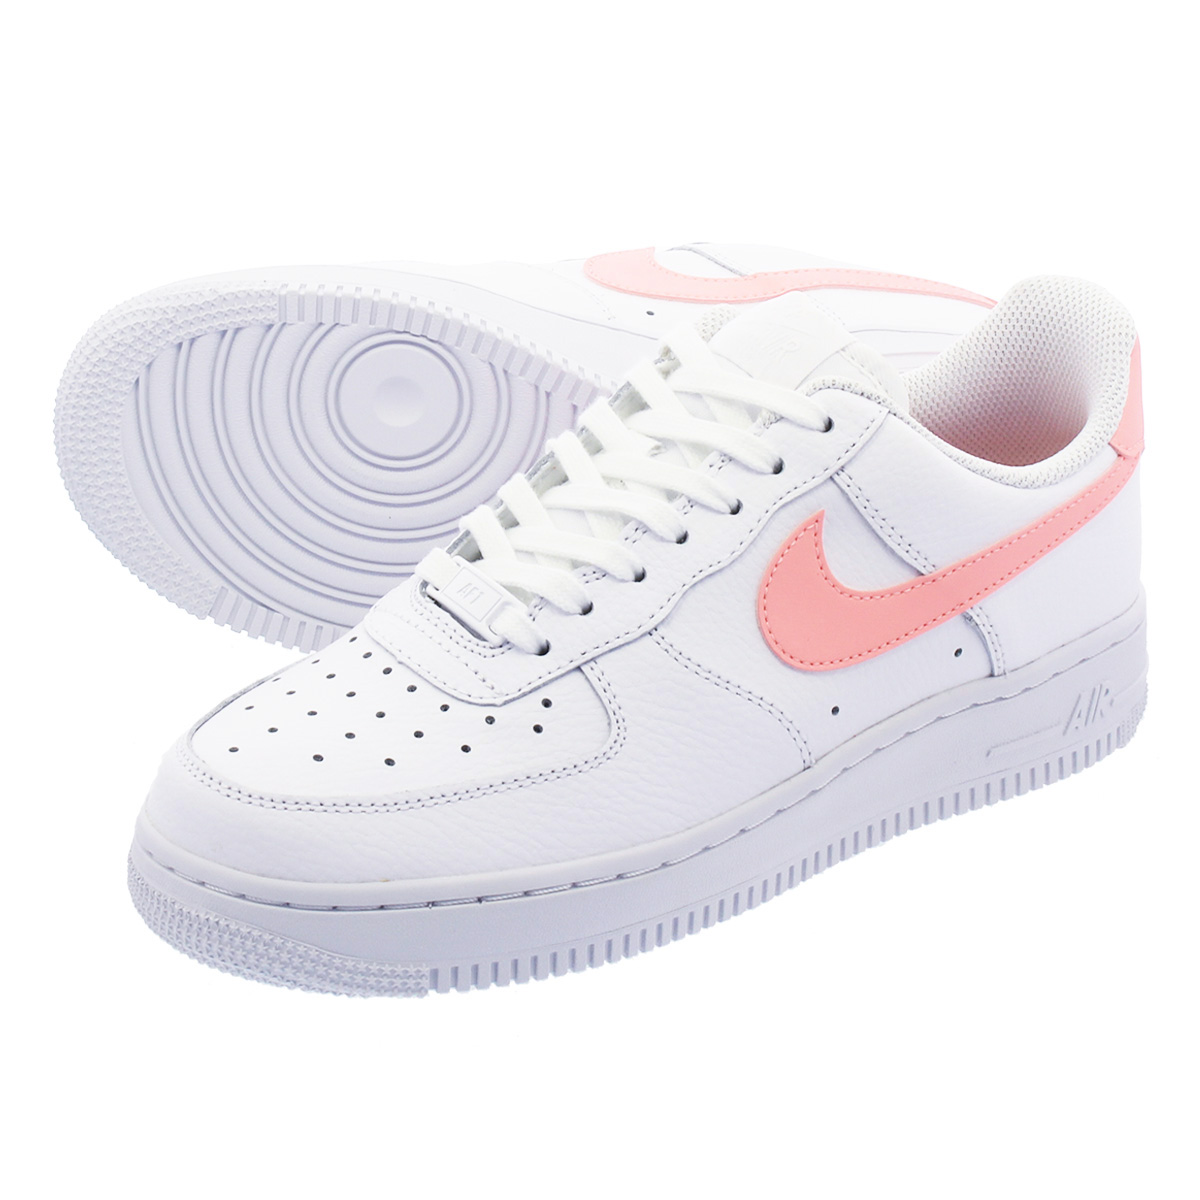 NIKE WMNS AIR FORCE 1 07 ナイキ ウィメンズ エアフォース 1 07 WHITE/ORACLE PINK/WHITE ah0287-102